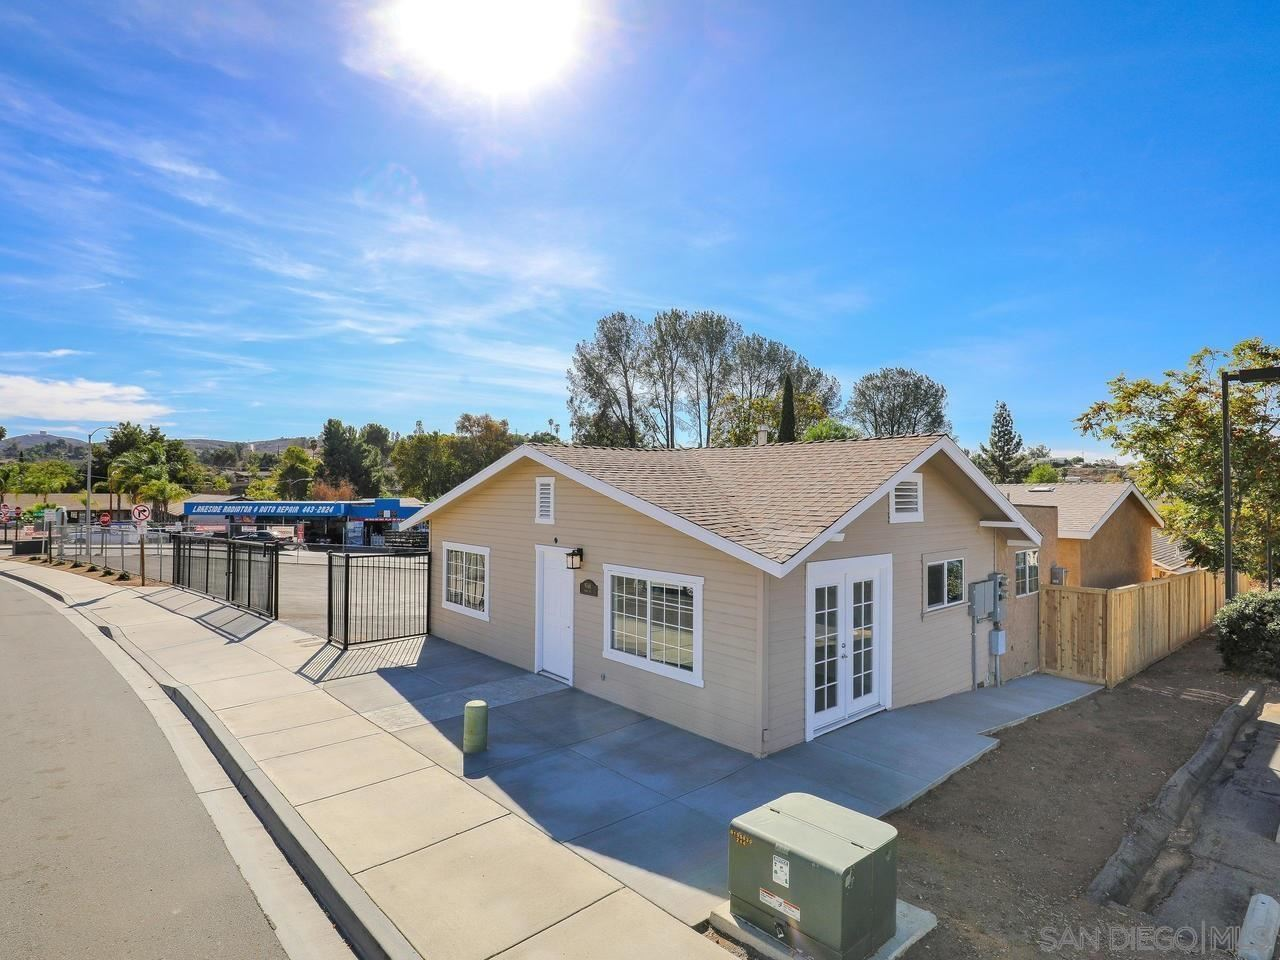 Photo of 9768 Maine Ave, Lakeside, CA 92040 (MLS # 210028356)